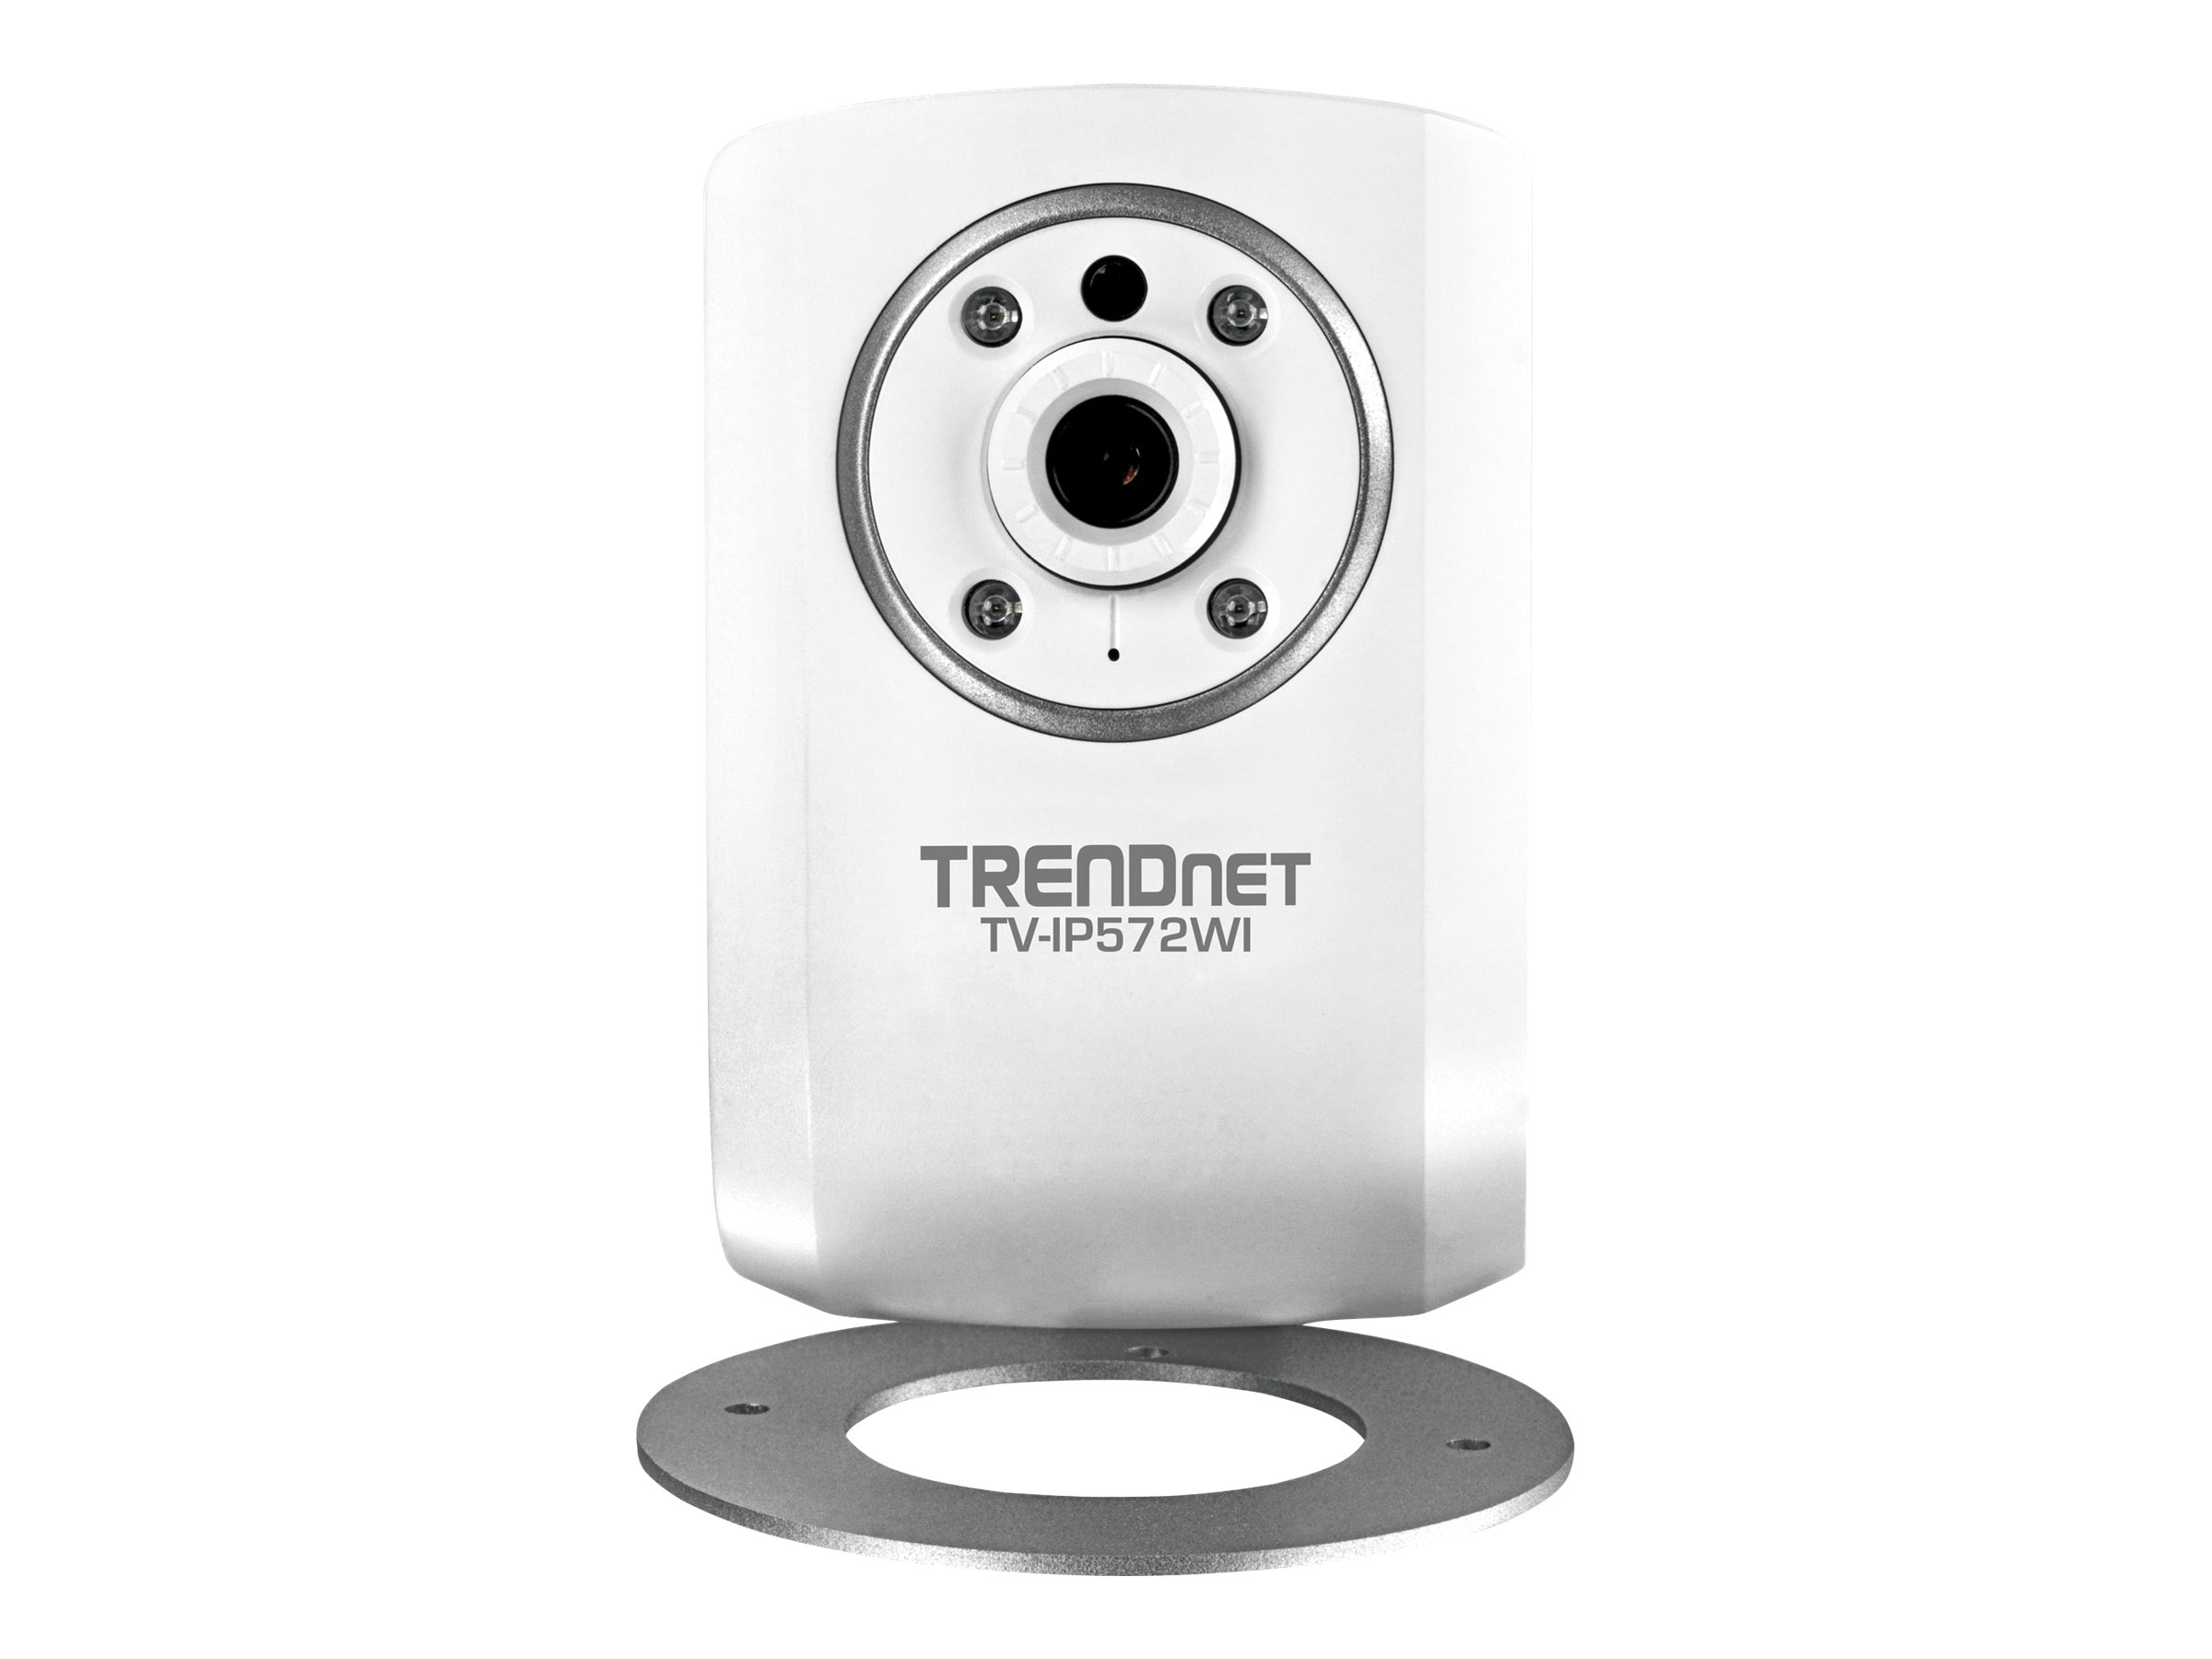 TRENDnet Wireless N Day Night Internet Camera, TV-IP572WI, 14410781, Cameras - Security